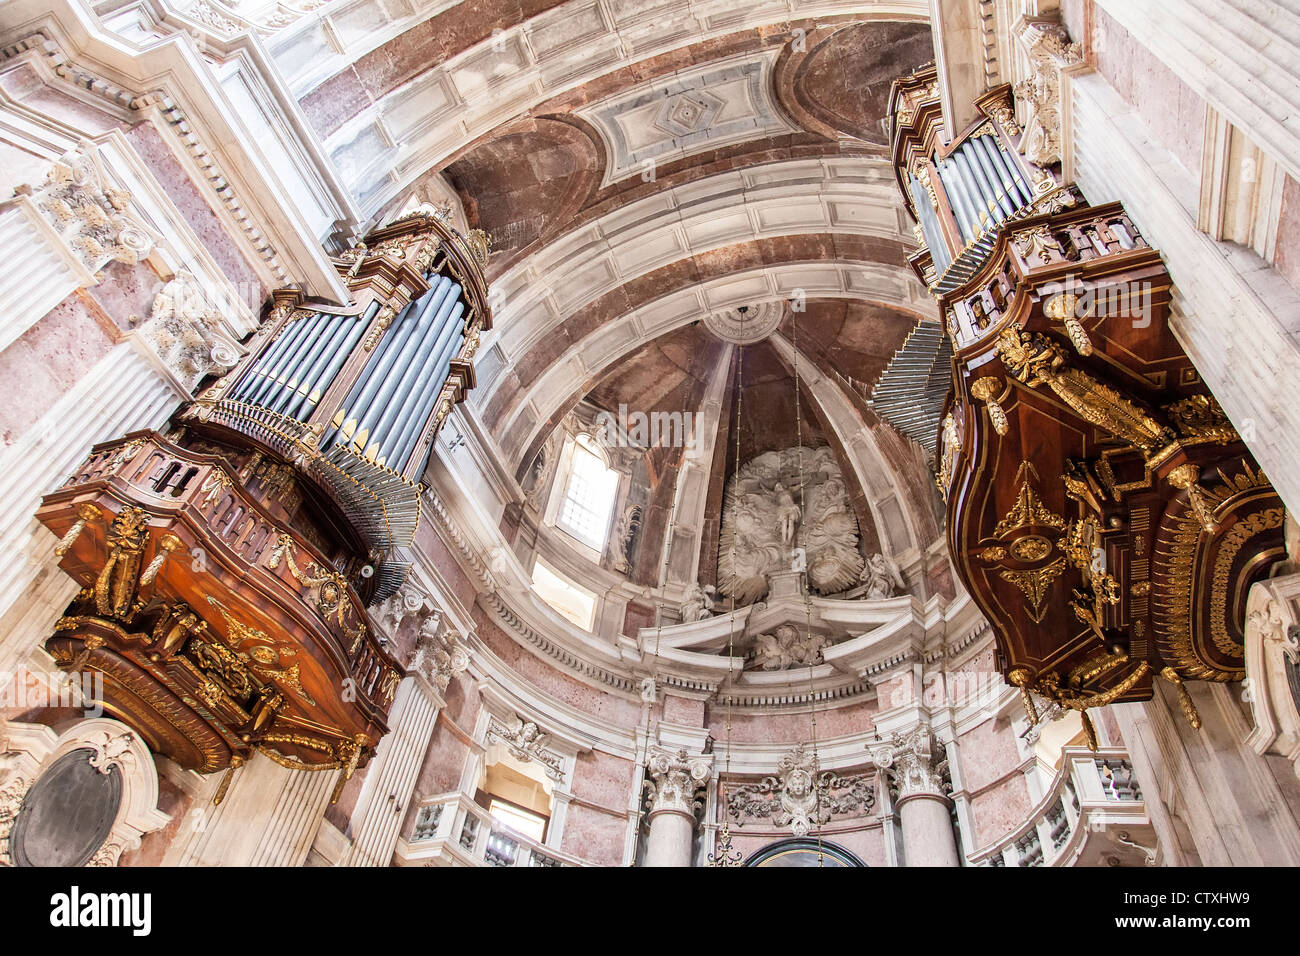 Two of the six organs (main altar area) of the Mafra National Palace and Convent in Portugal. Baroque architecture. - Stock Image